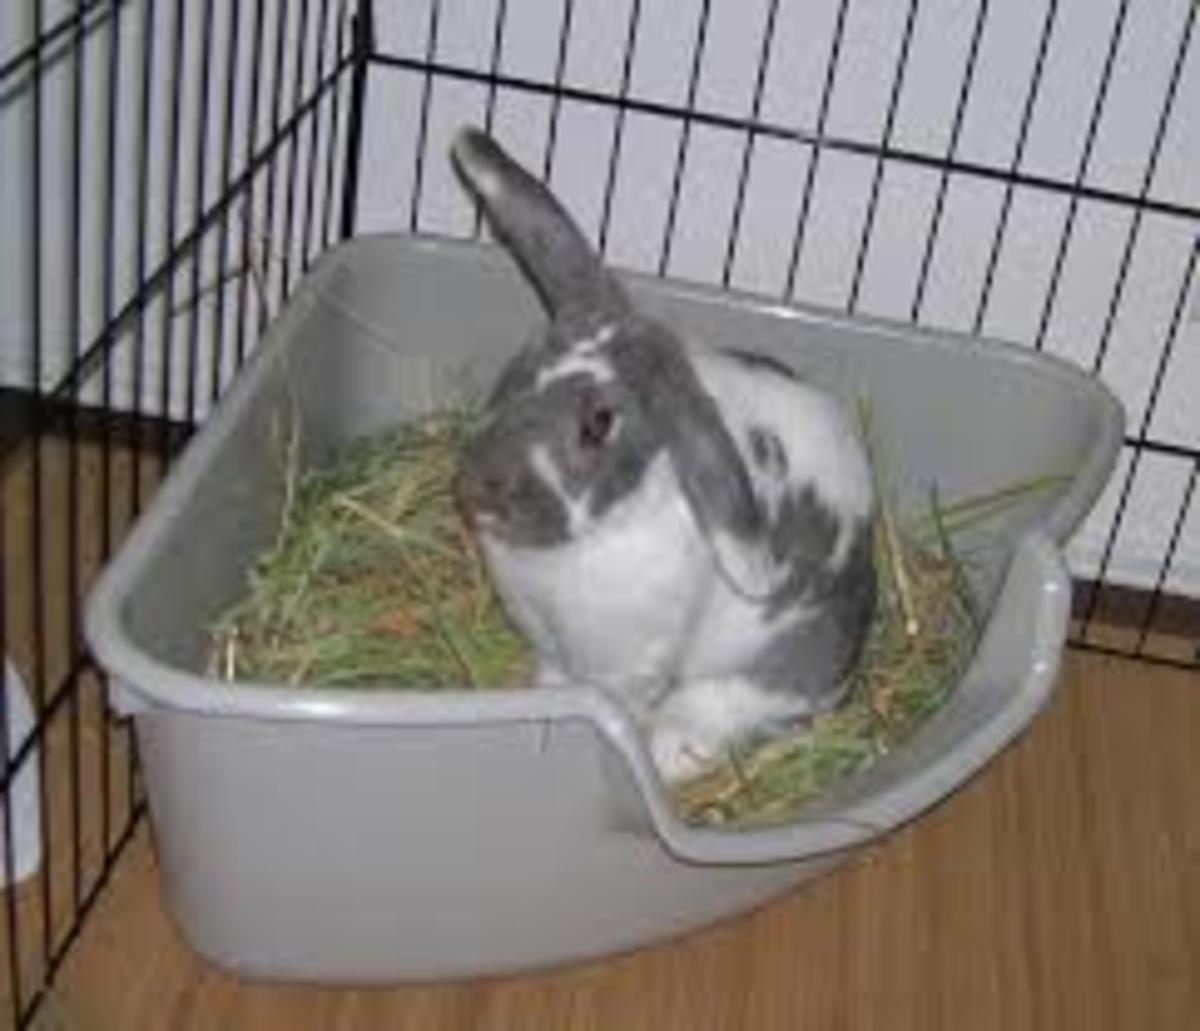 Litter Box Train a Rabbit